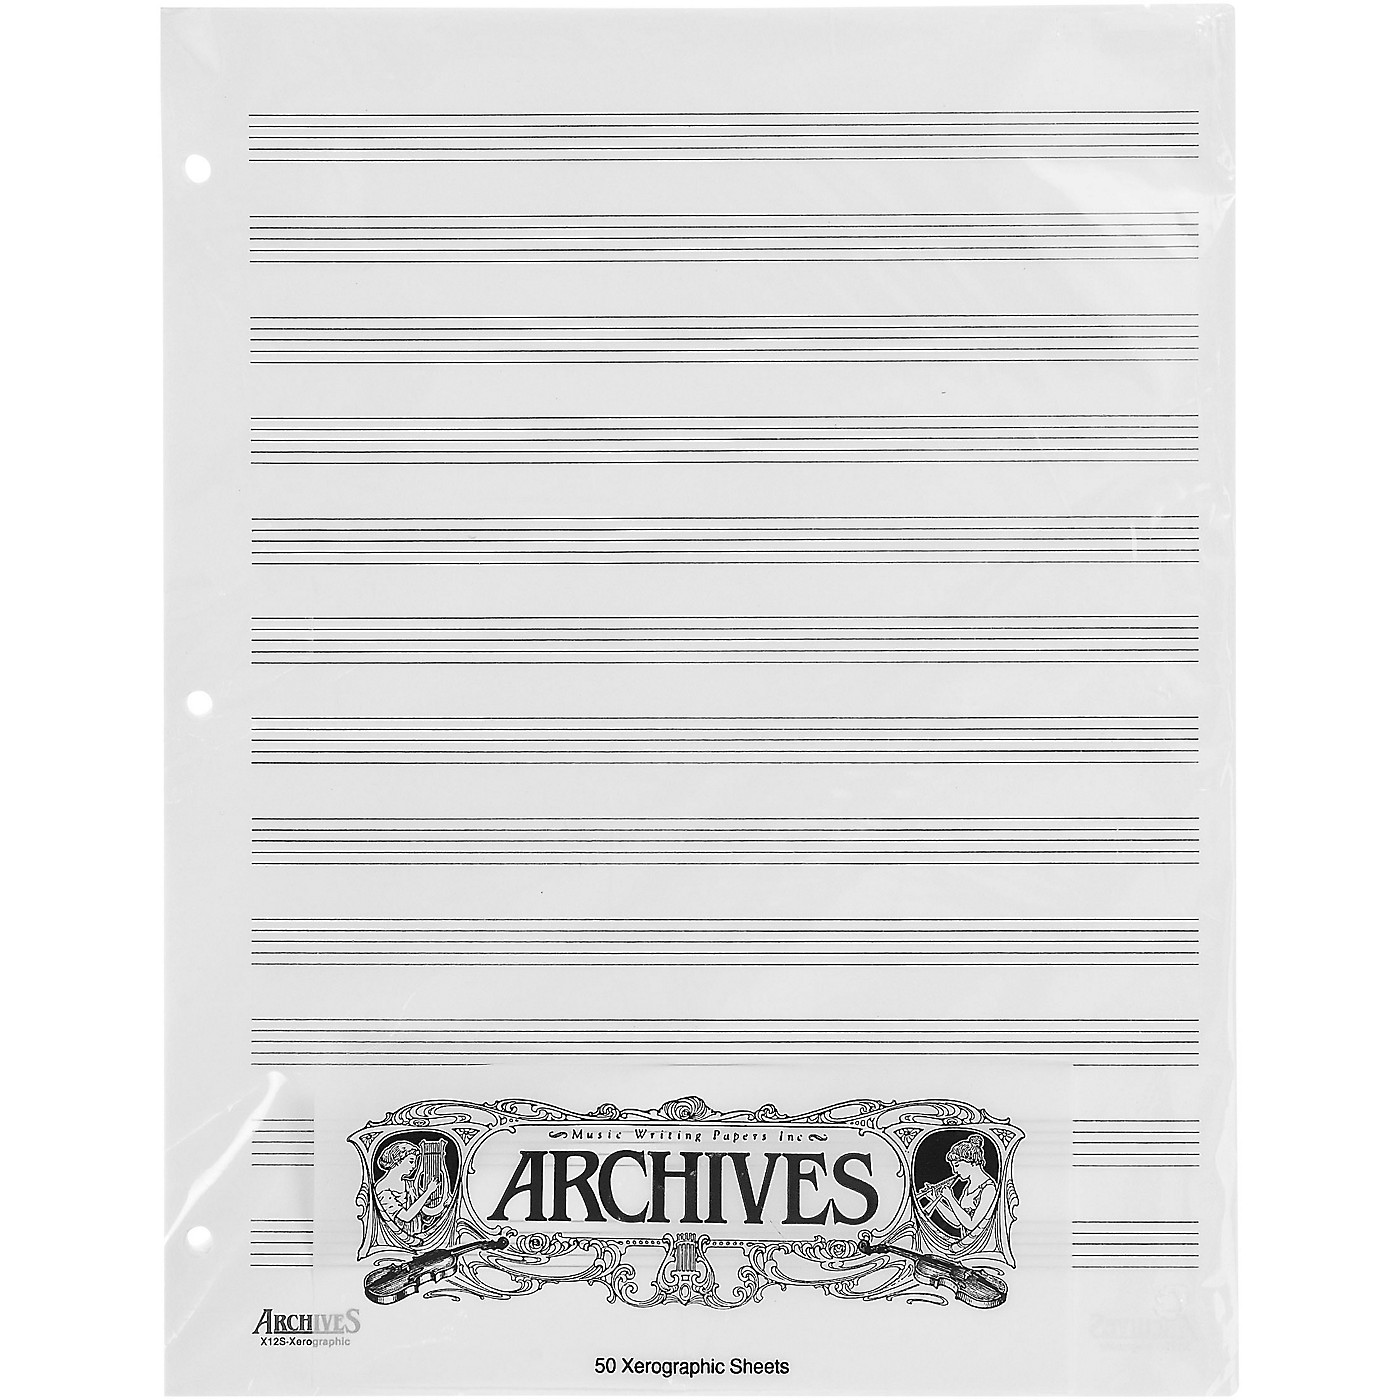 Archives Loose Leaf Manuscript Paper 12 Stave 50 Xerographic Sheets thumbnail